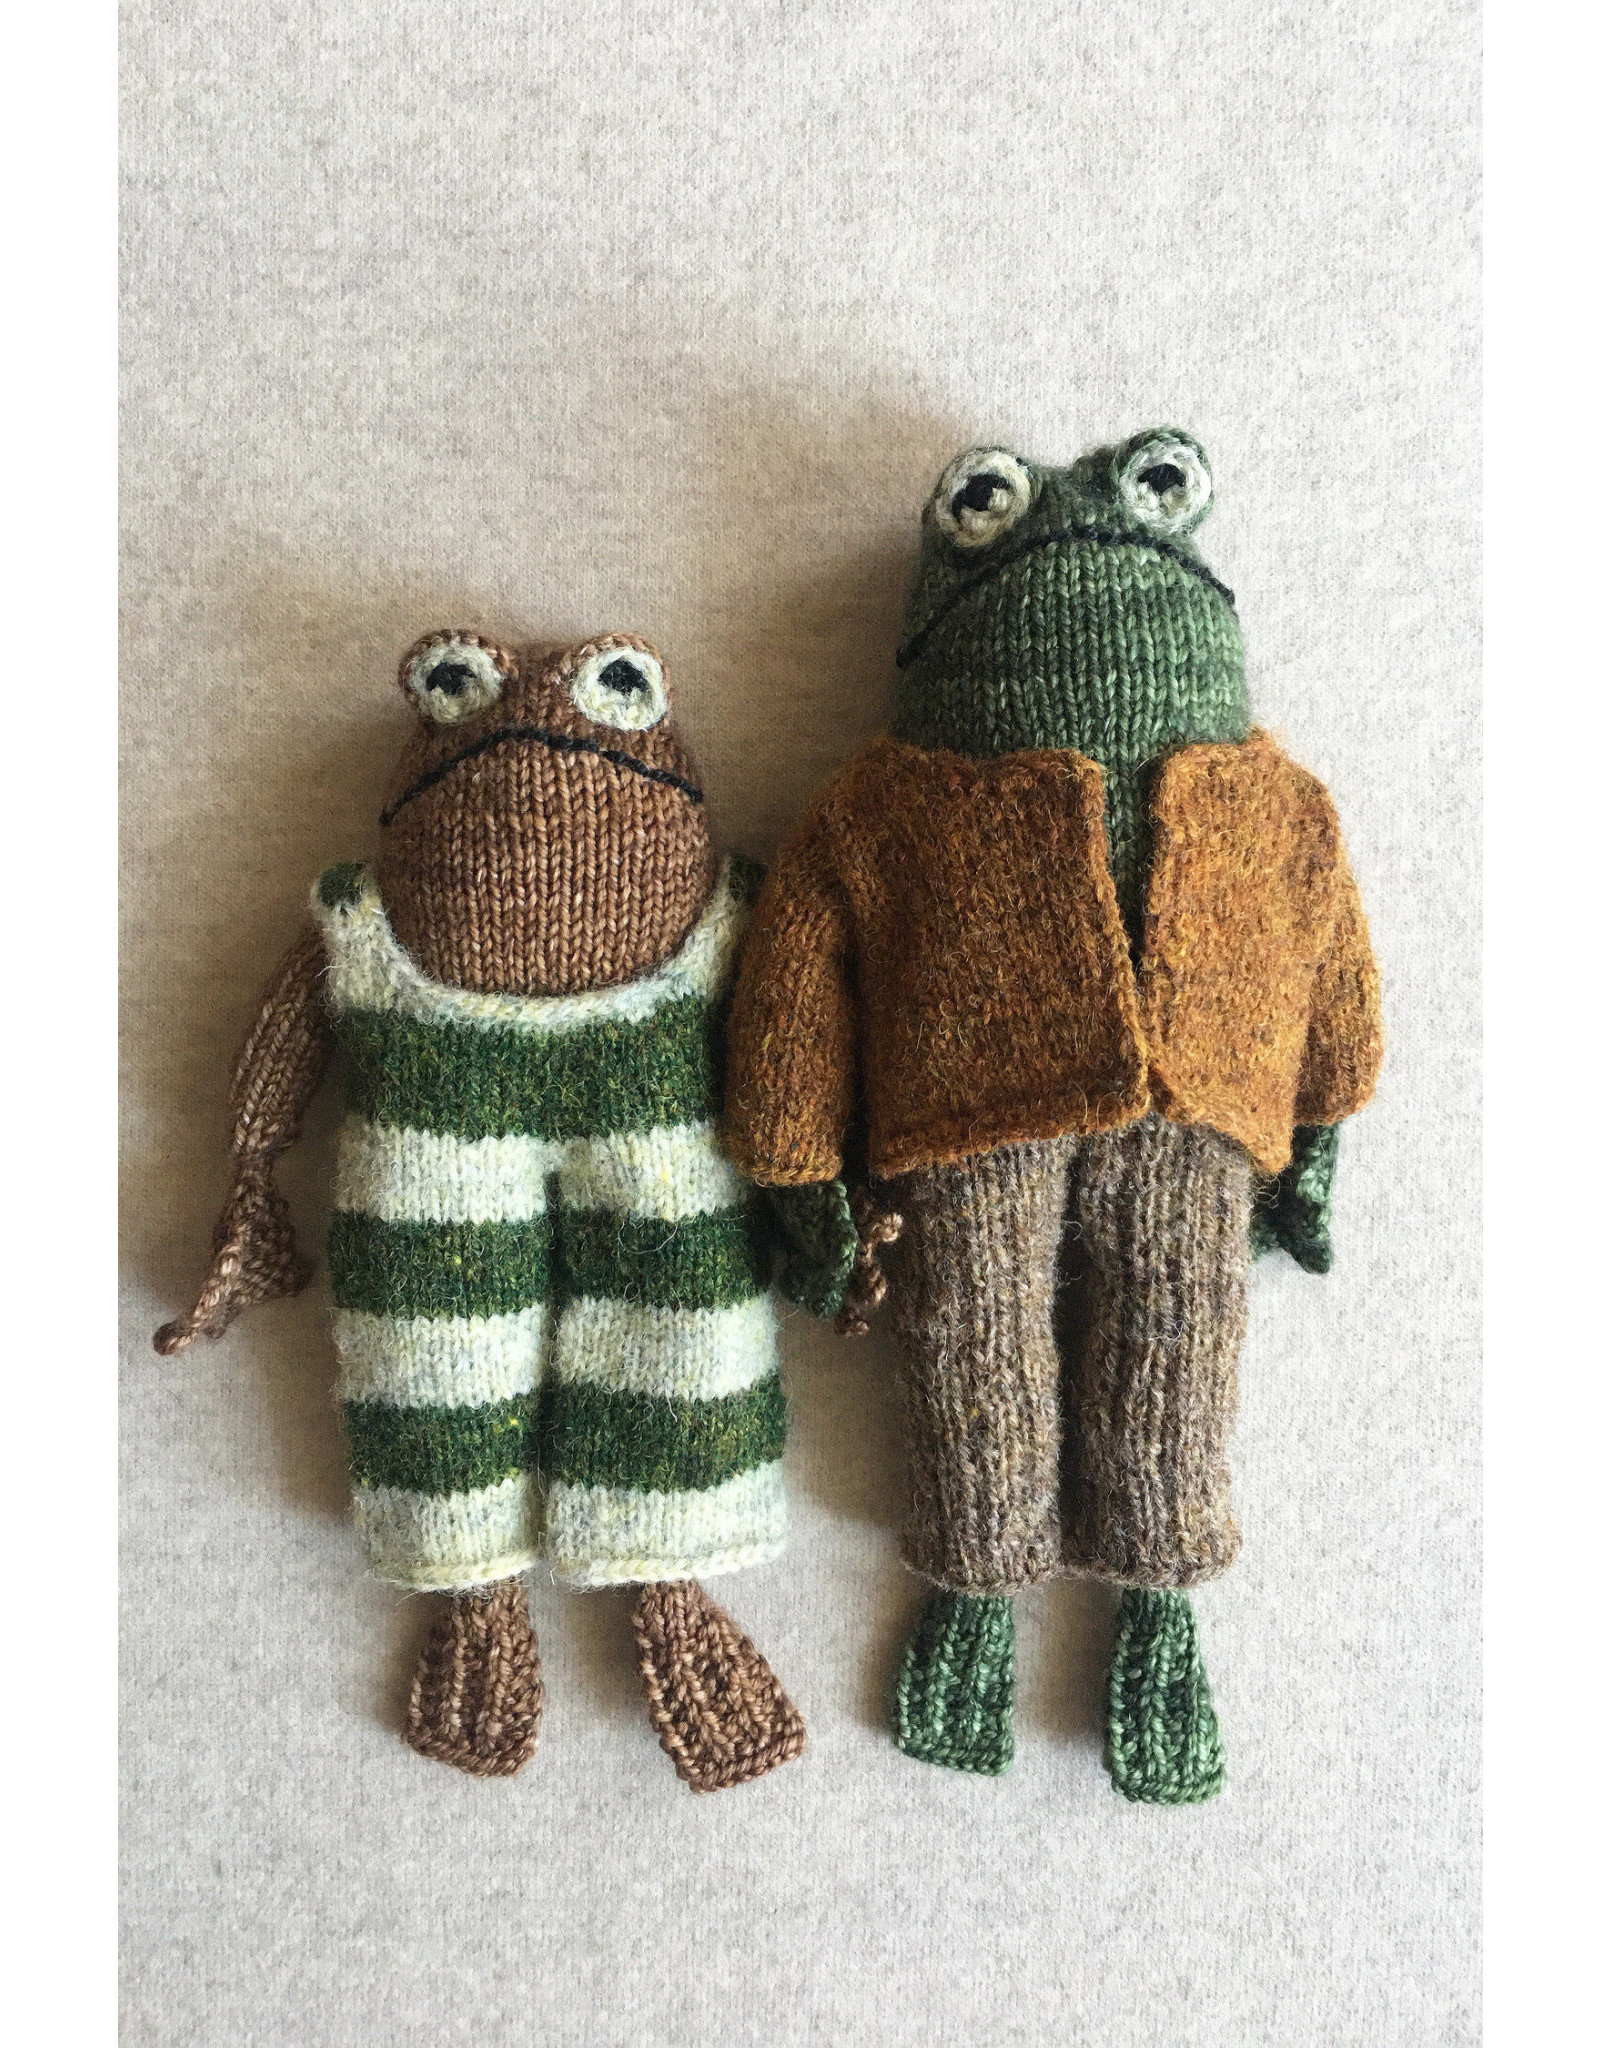 Luminous Brooklyn Frog and Toad kit *preorder* will ship mid-March 2021